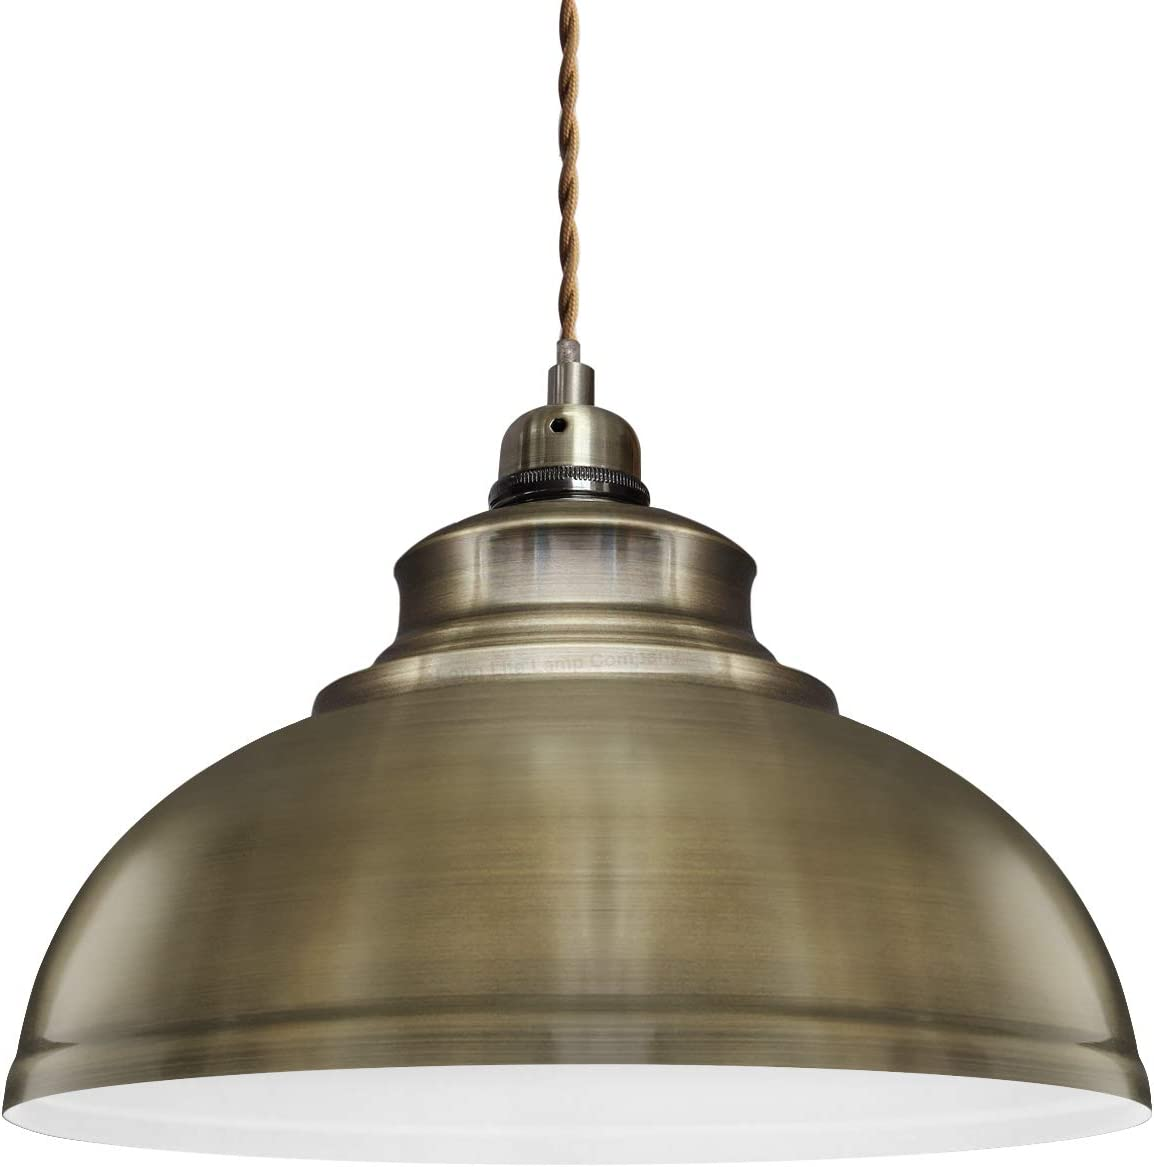 Modern Vintage Antique Brass Pendant Light Shade Industrial Hanging Ceiling Light Ideal For Dining Room Bar Clubs Restaurants Amazon Co Uk Lighting